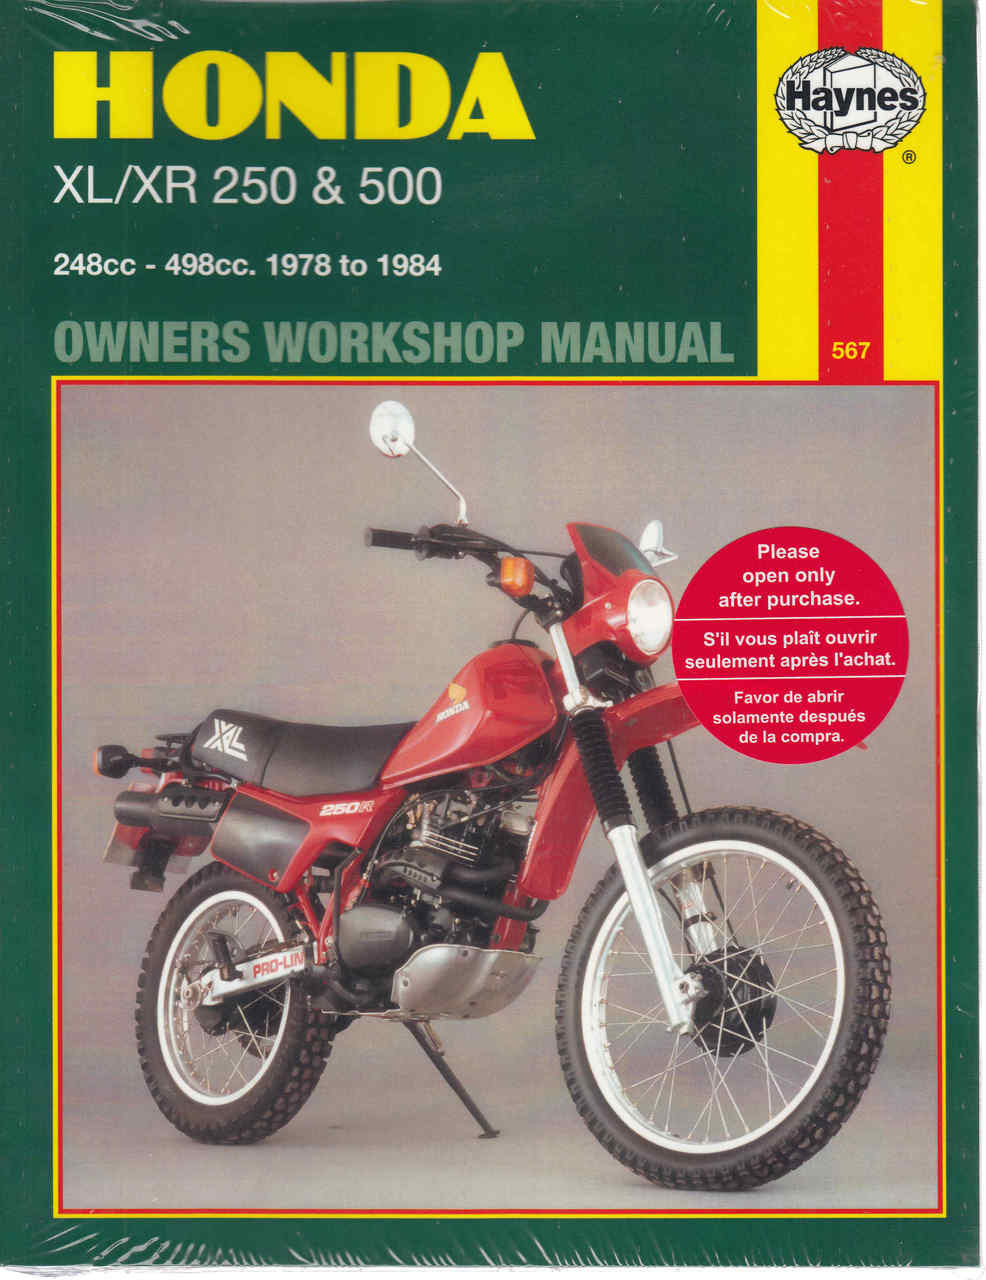 Honda XL / XR 250 & 500 1978 - 1984 Workshop Manual ...